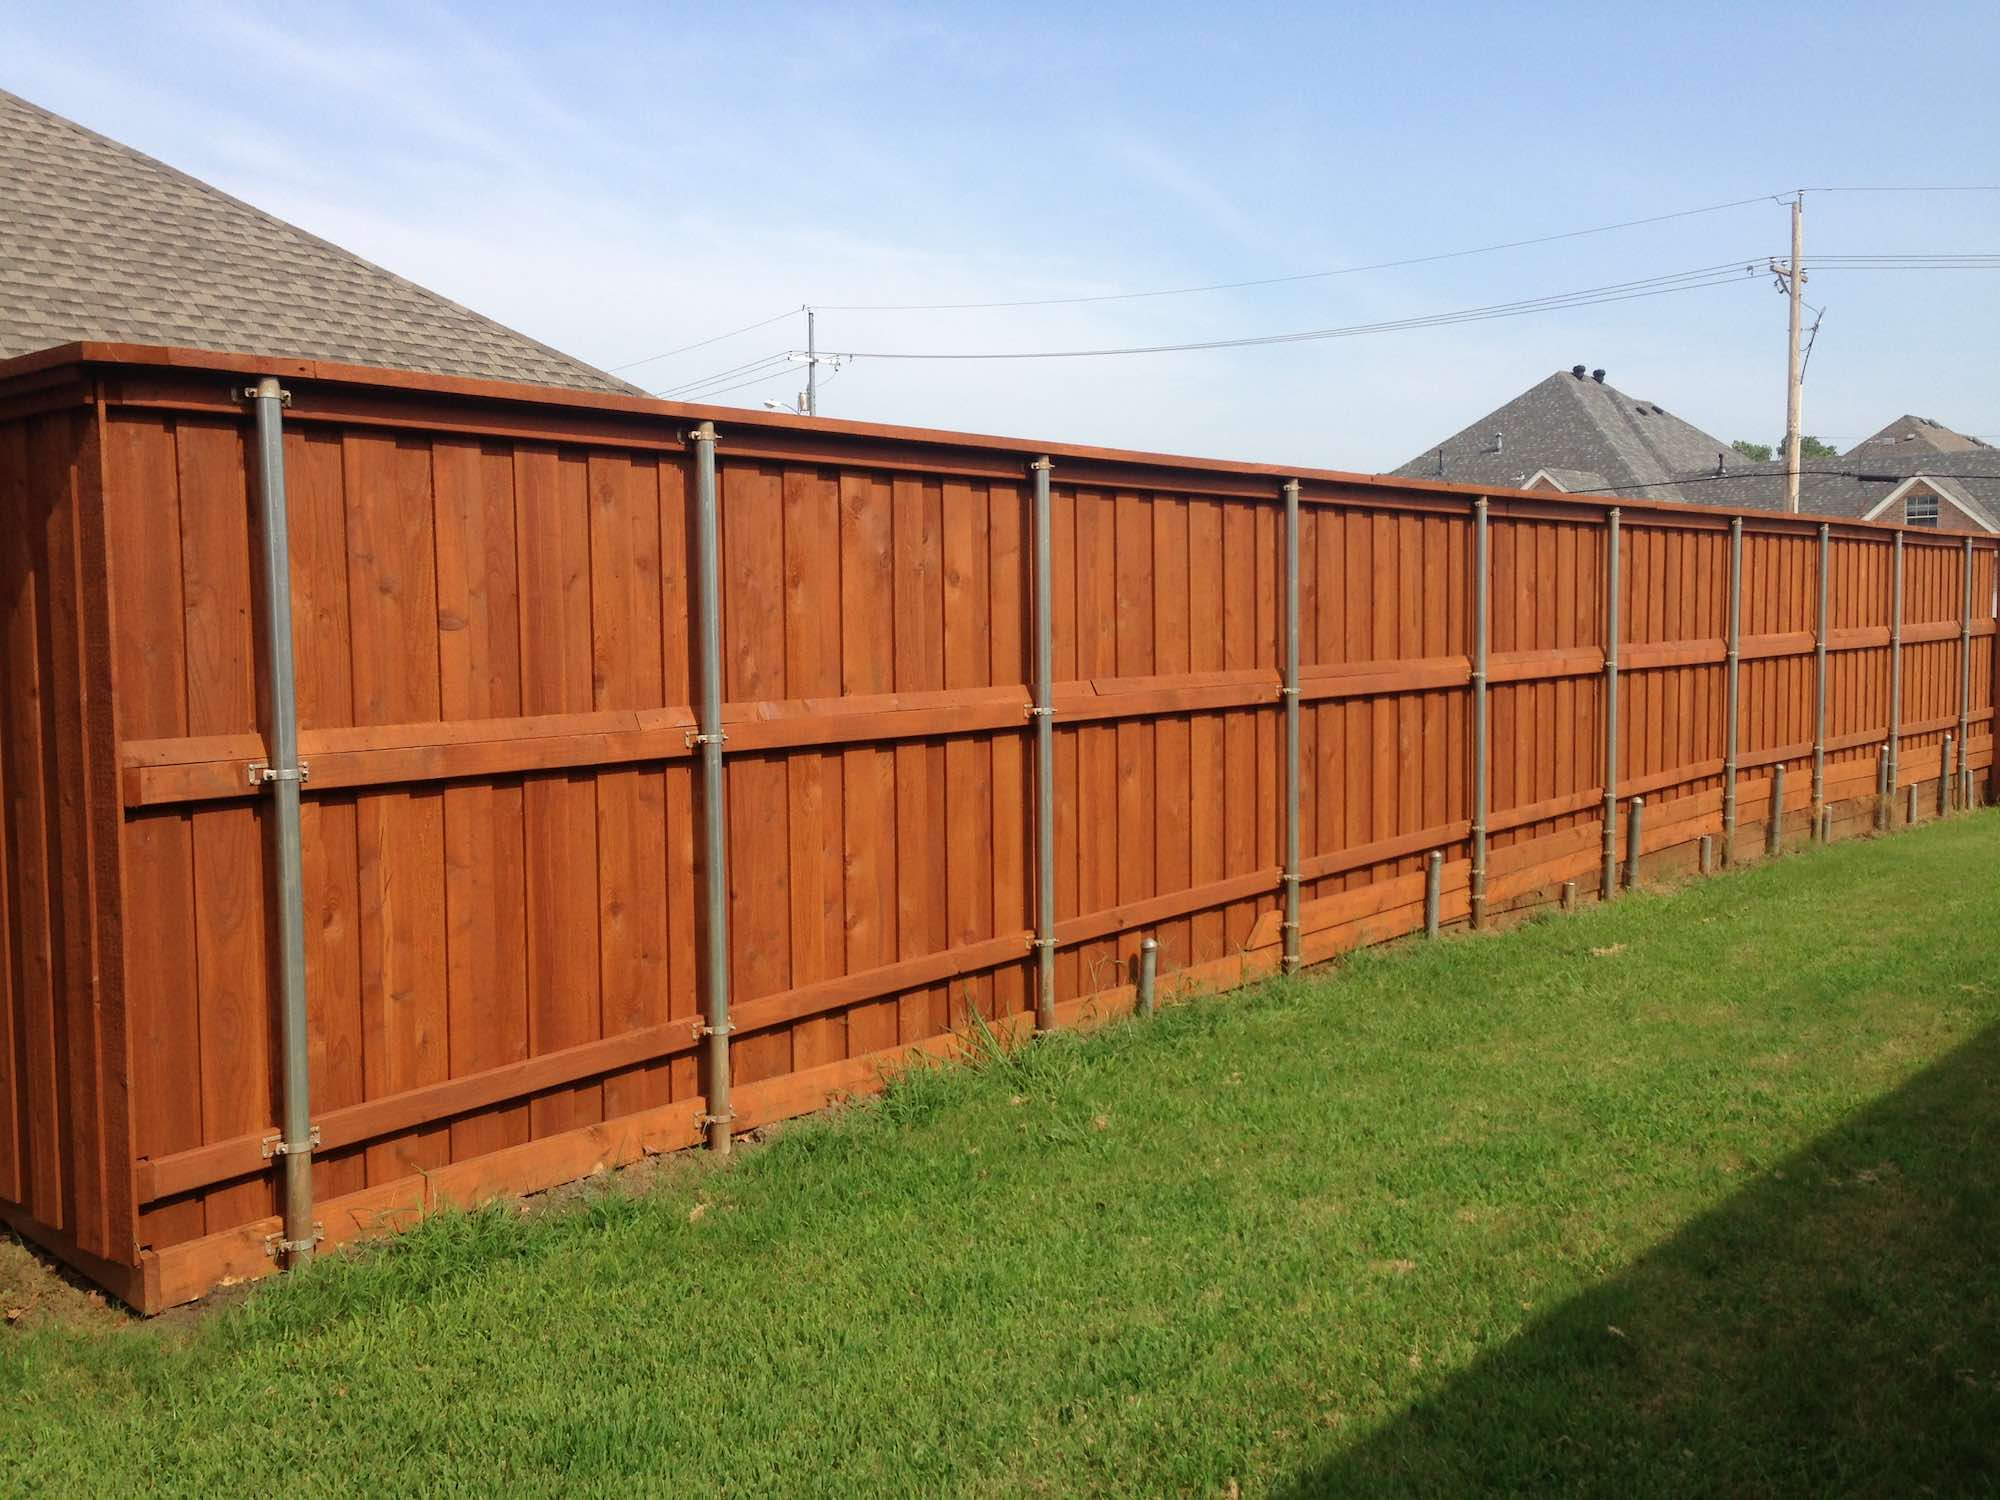 Fence Restoration Stain Repair Plano Sealant Specialists regarding 15 Clever Ways How to Upgrade Backyard Fence Repair